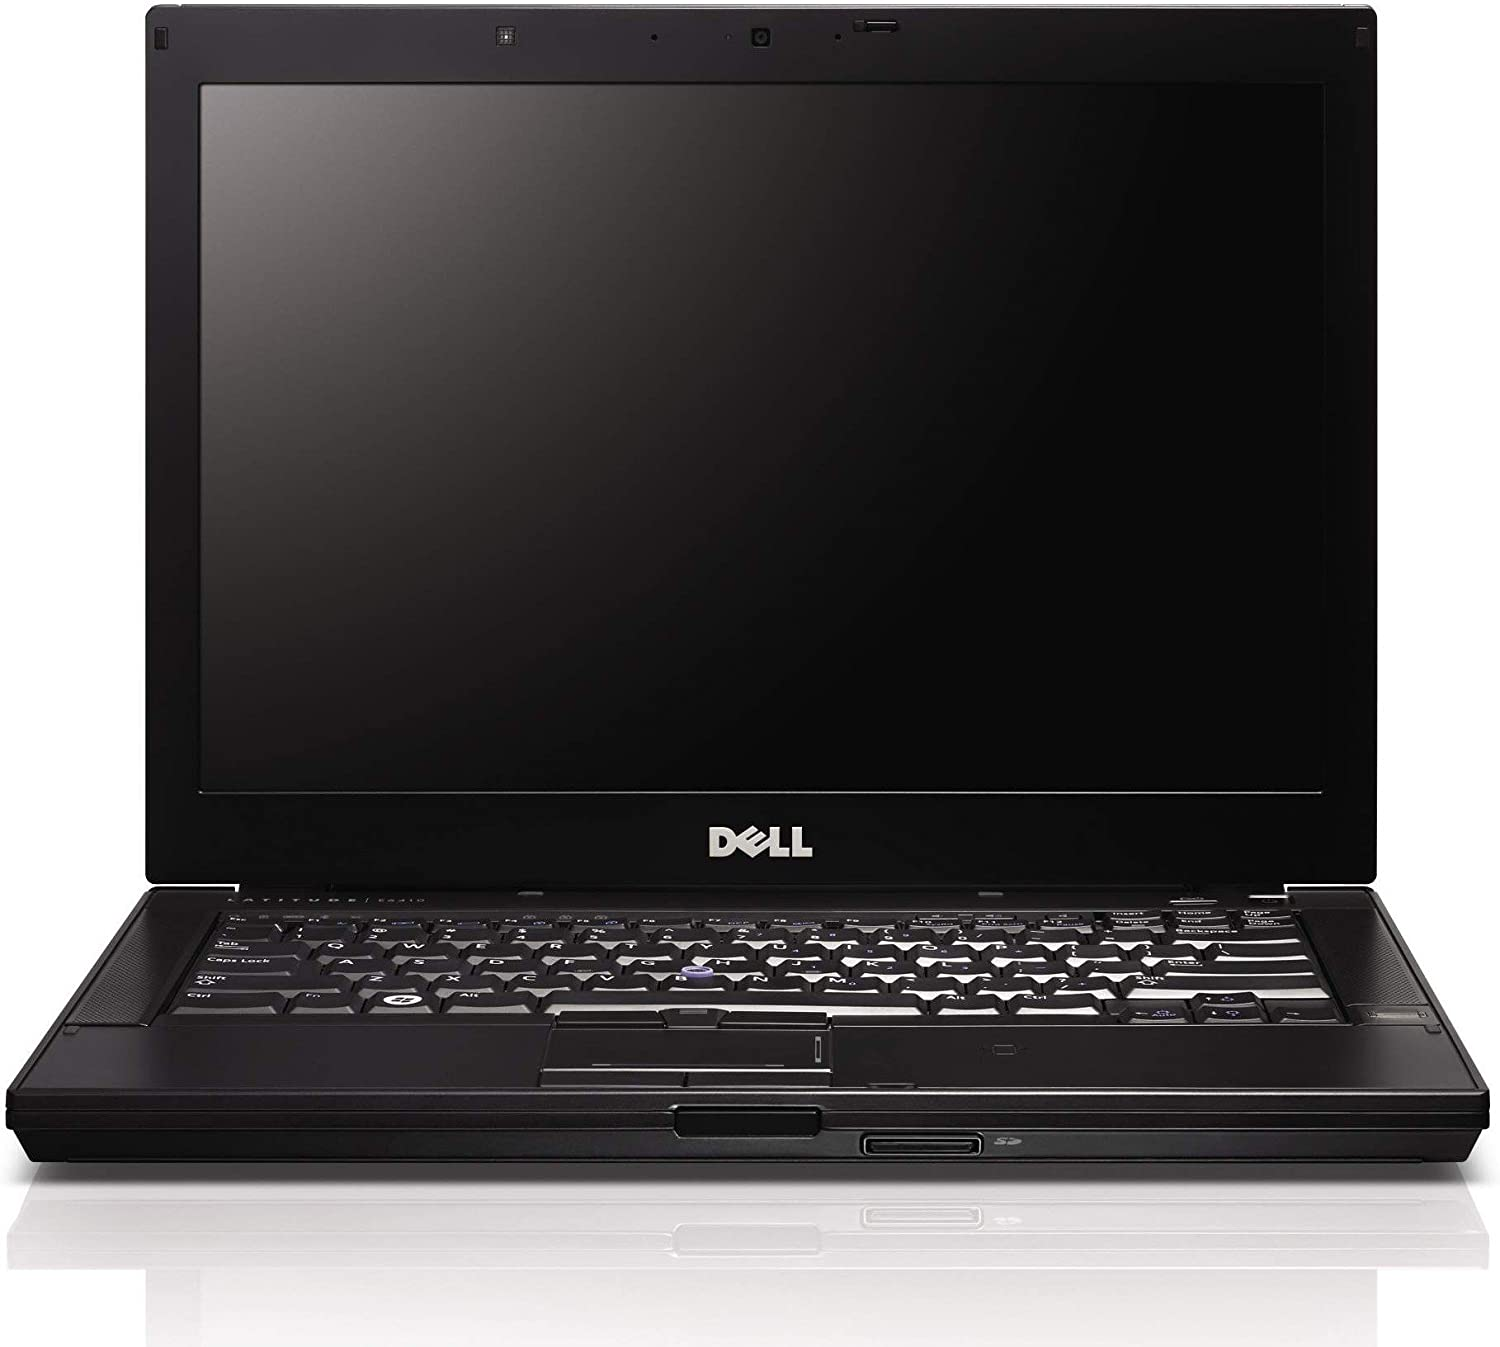 "Dell Latitude E6410 Core i5 2.67GHz, 4GB RAM, 250GB Hard Drive, DVDRW, 14.1"" Display, Windows 10 Professional"